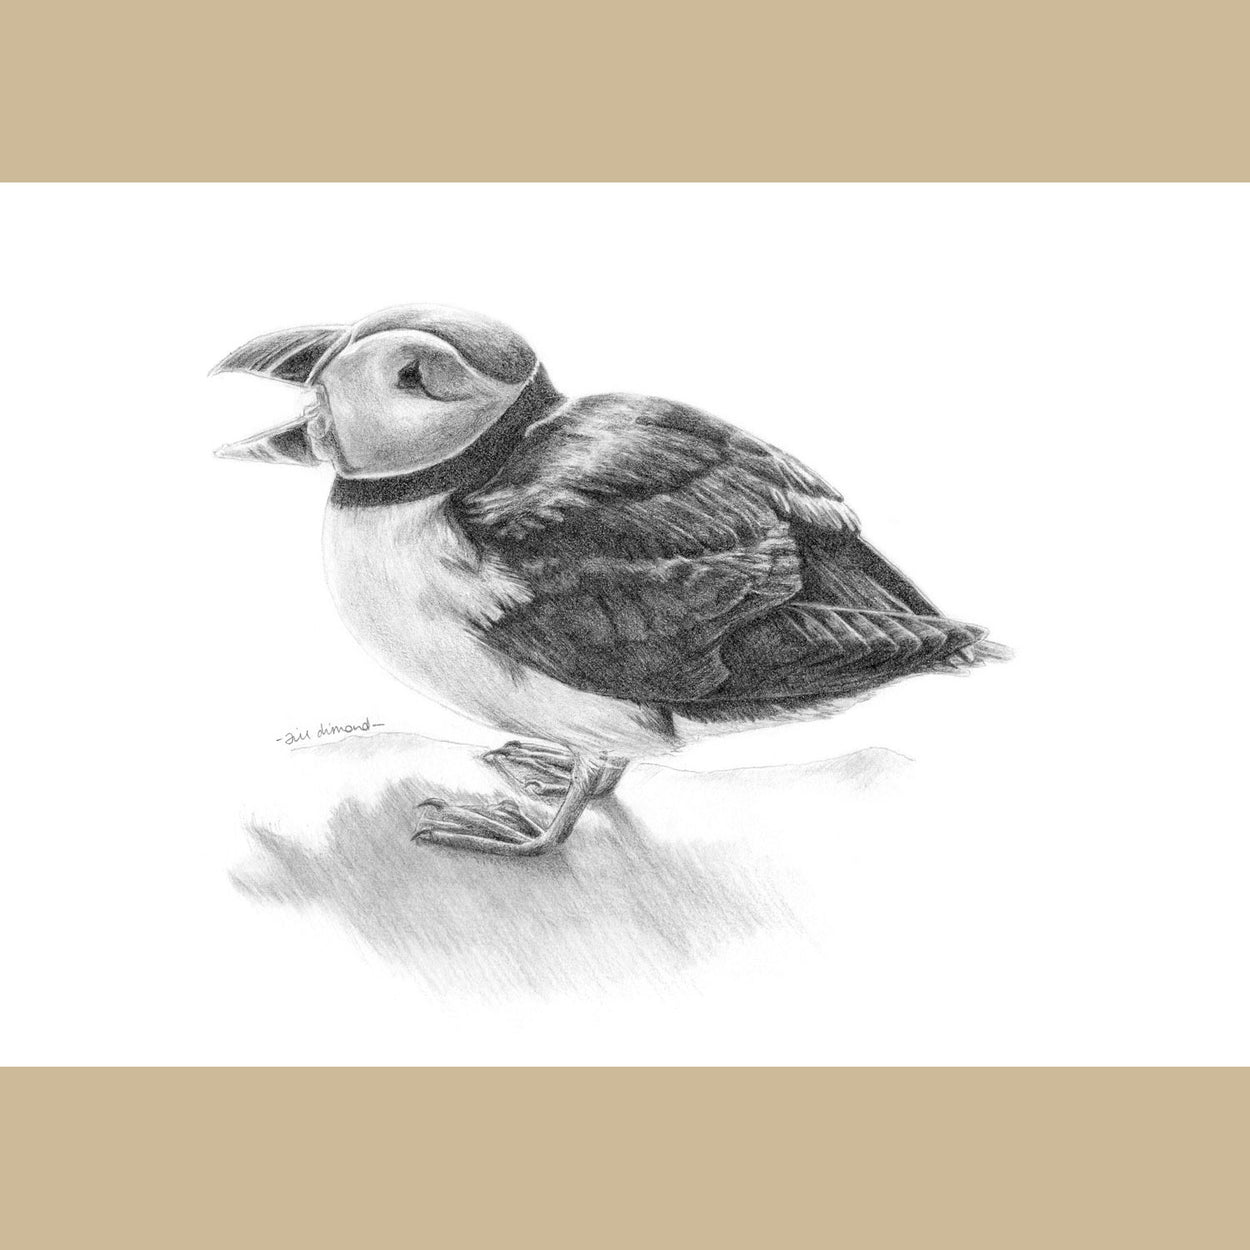 Puffin Graphite Drawing - The Thriving Wild - Jill Dimond